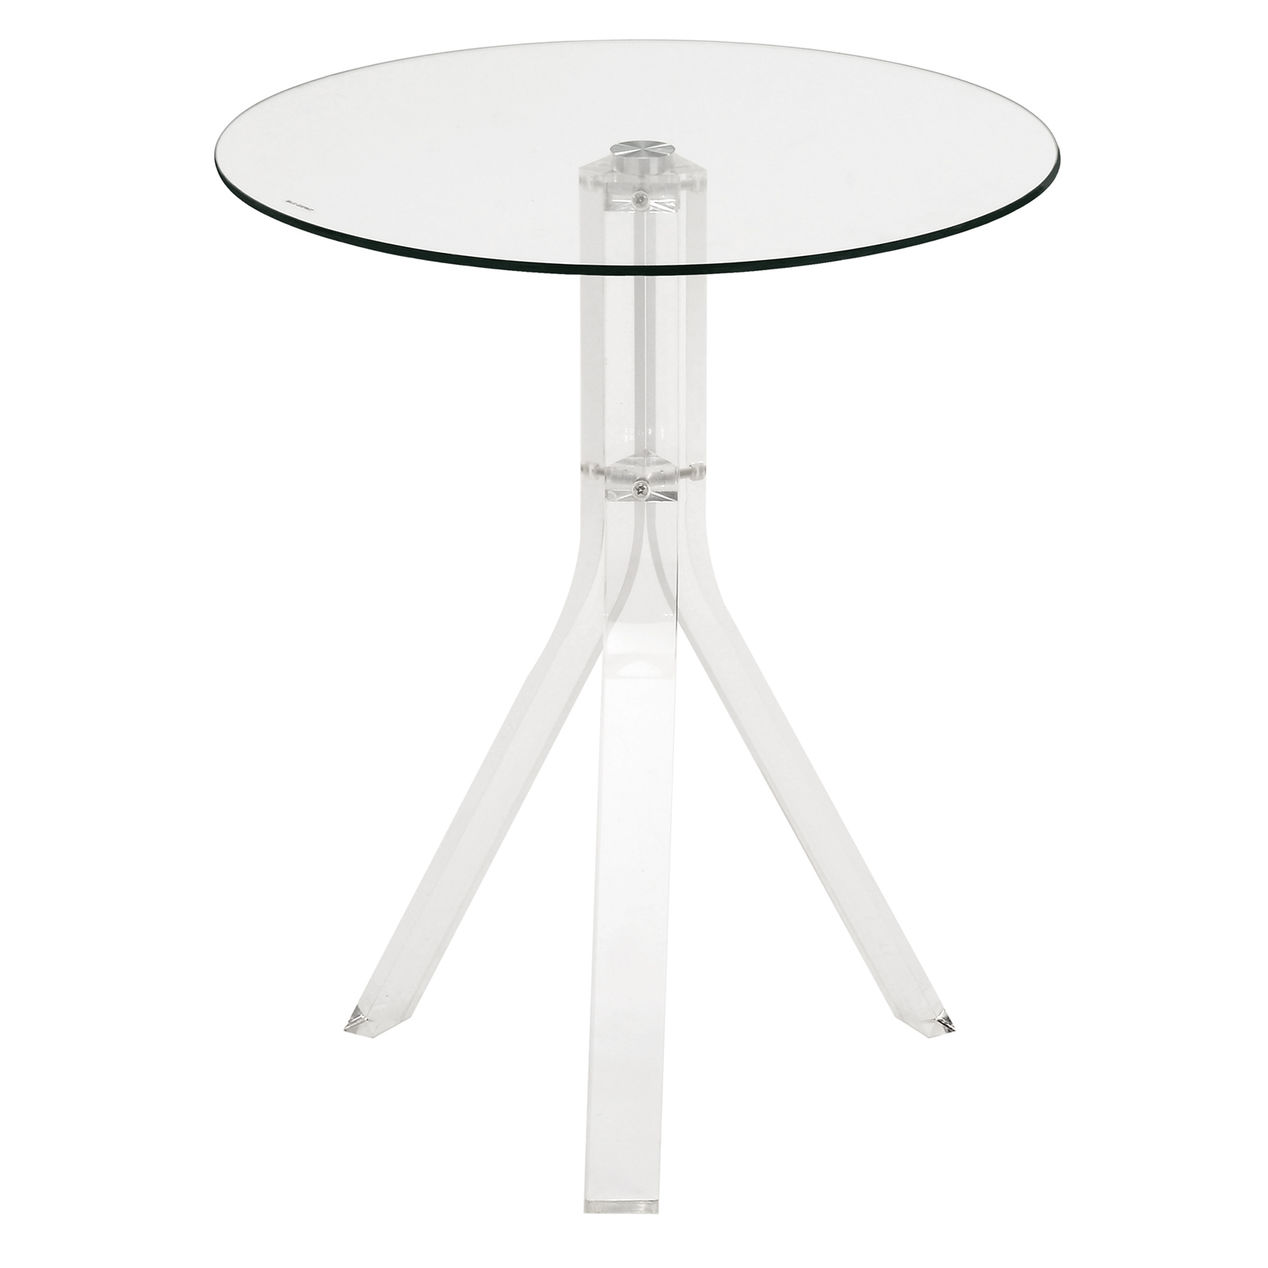 acrylic round accent table home white solid marble end tables top bistro beach themed room decor counter height bench inch legs small decorative coffee metal skinny console with